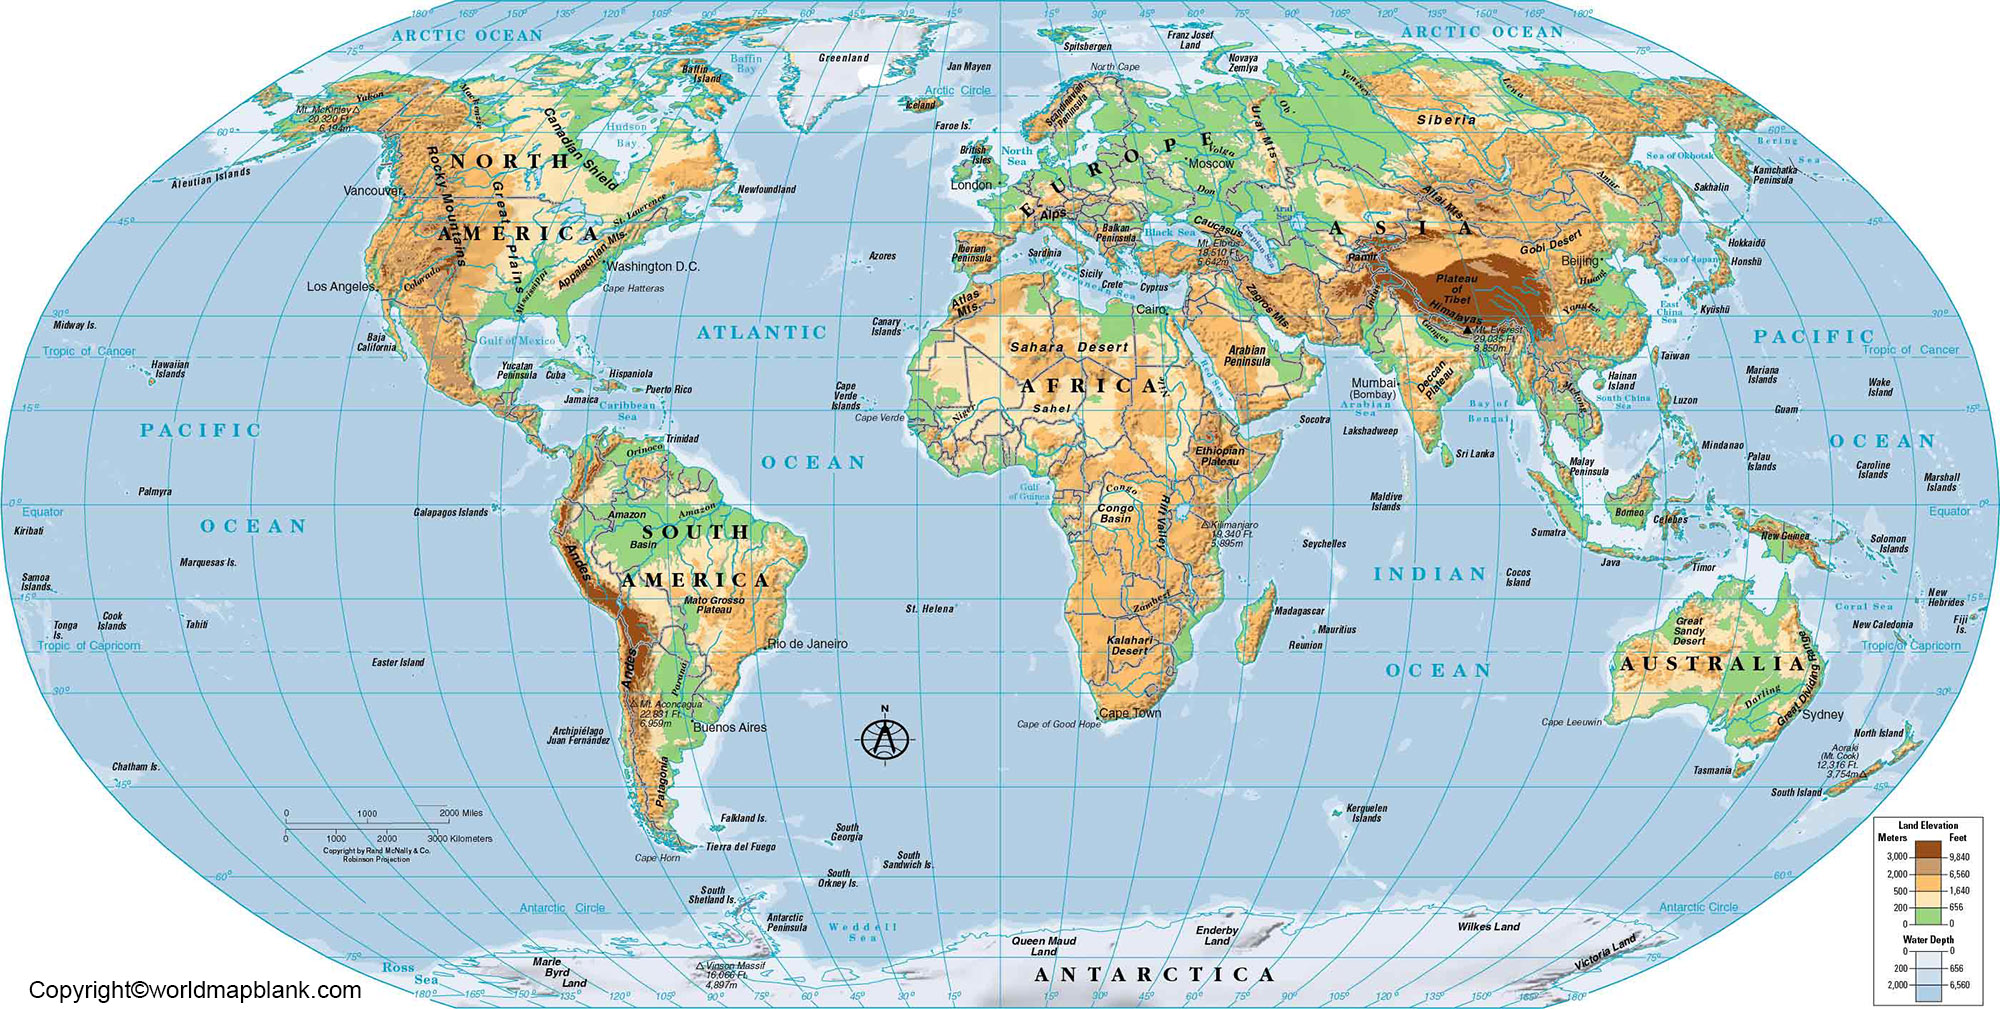 World Geographical Map with Coordinates